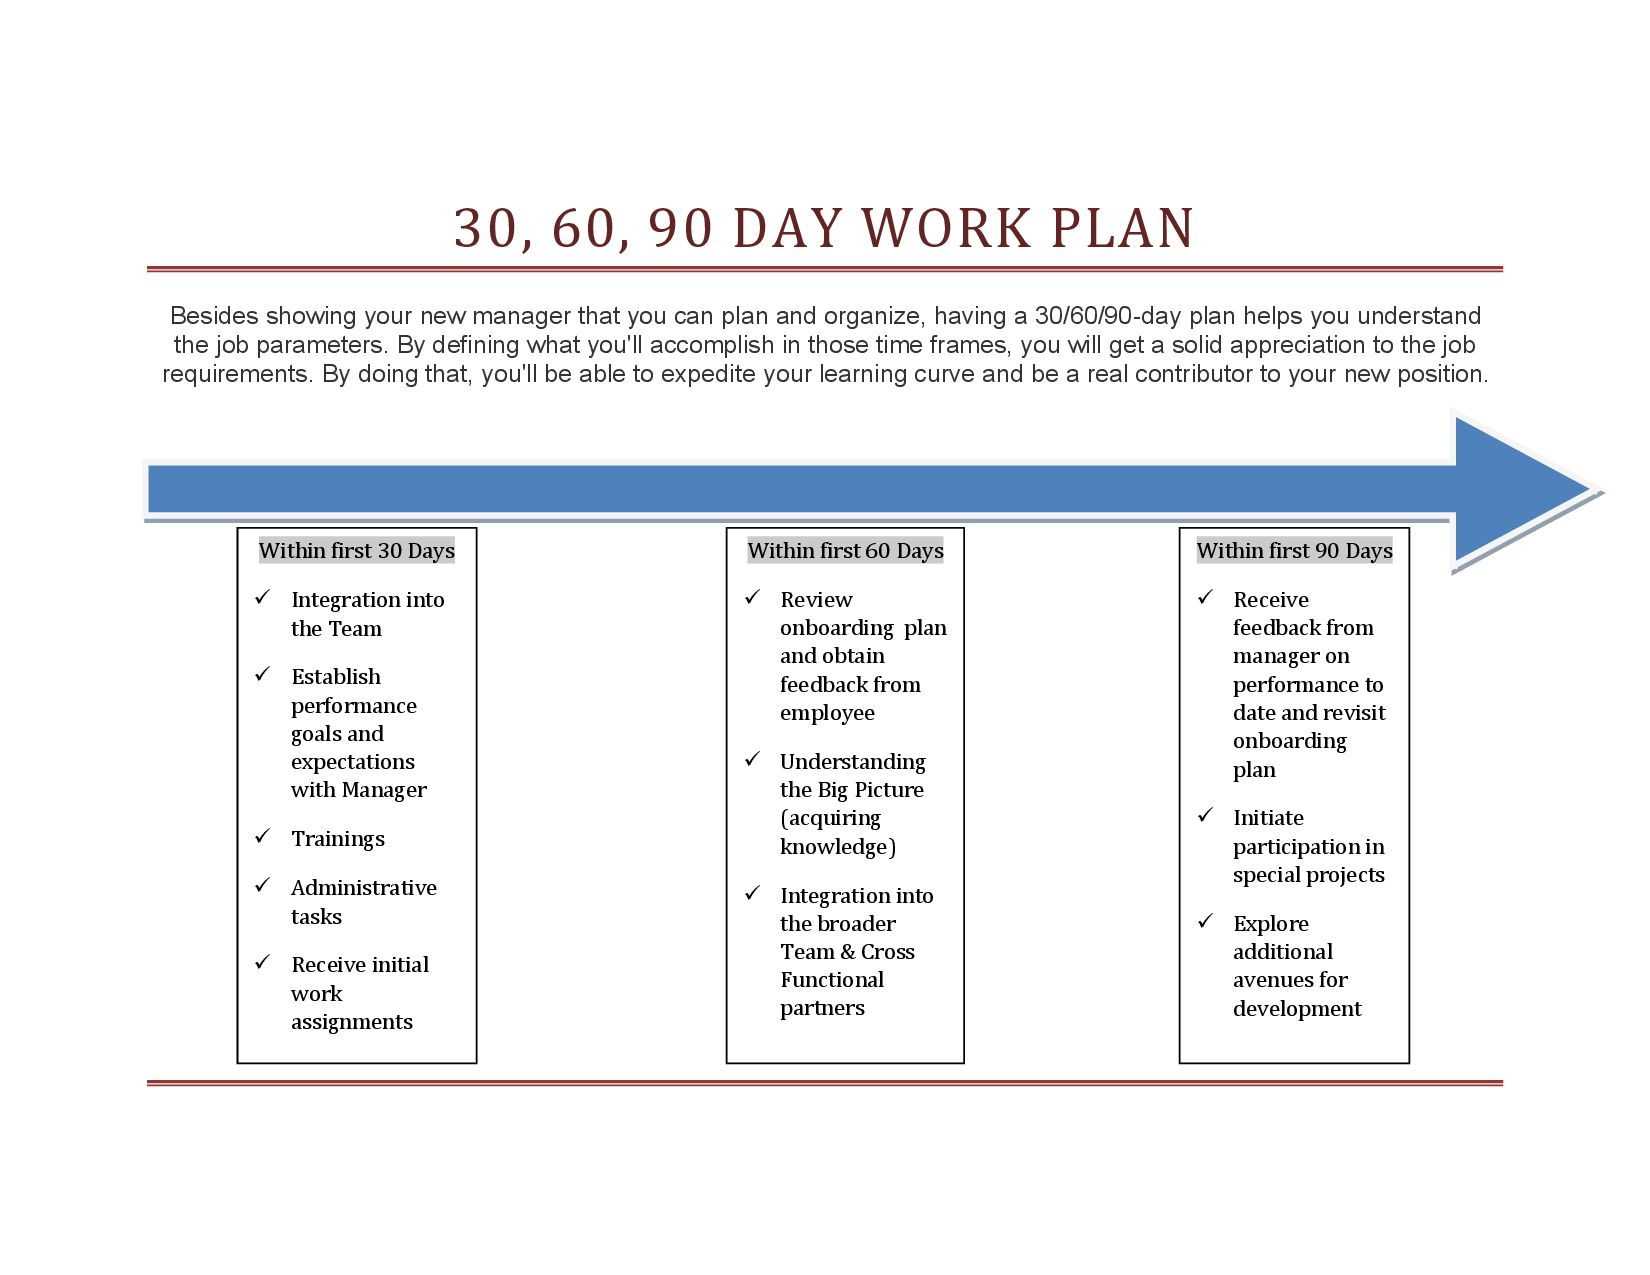 30 60 90 Day Plan Template Word In 2020 90 Day Plan Marketing